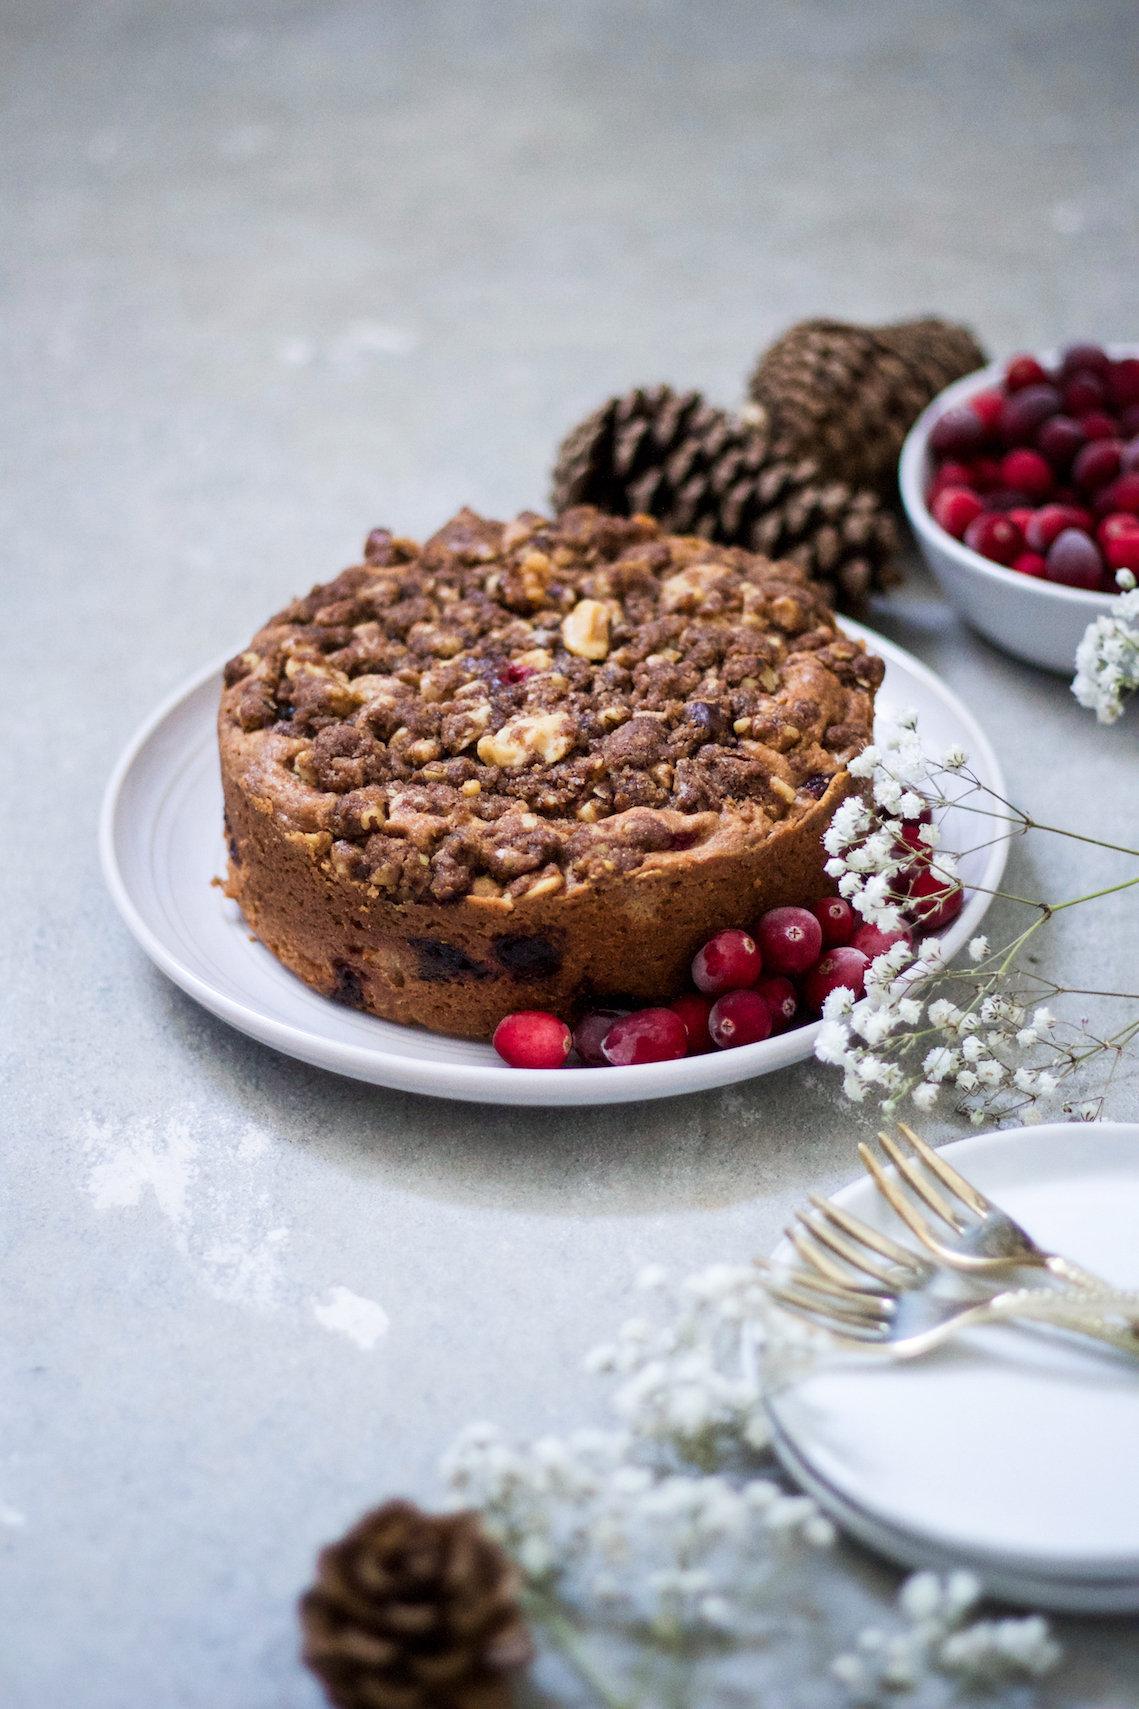 Cranberry coffee cake 2.jpg